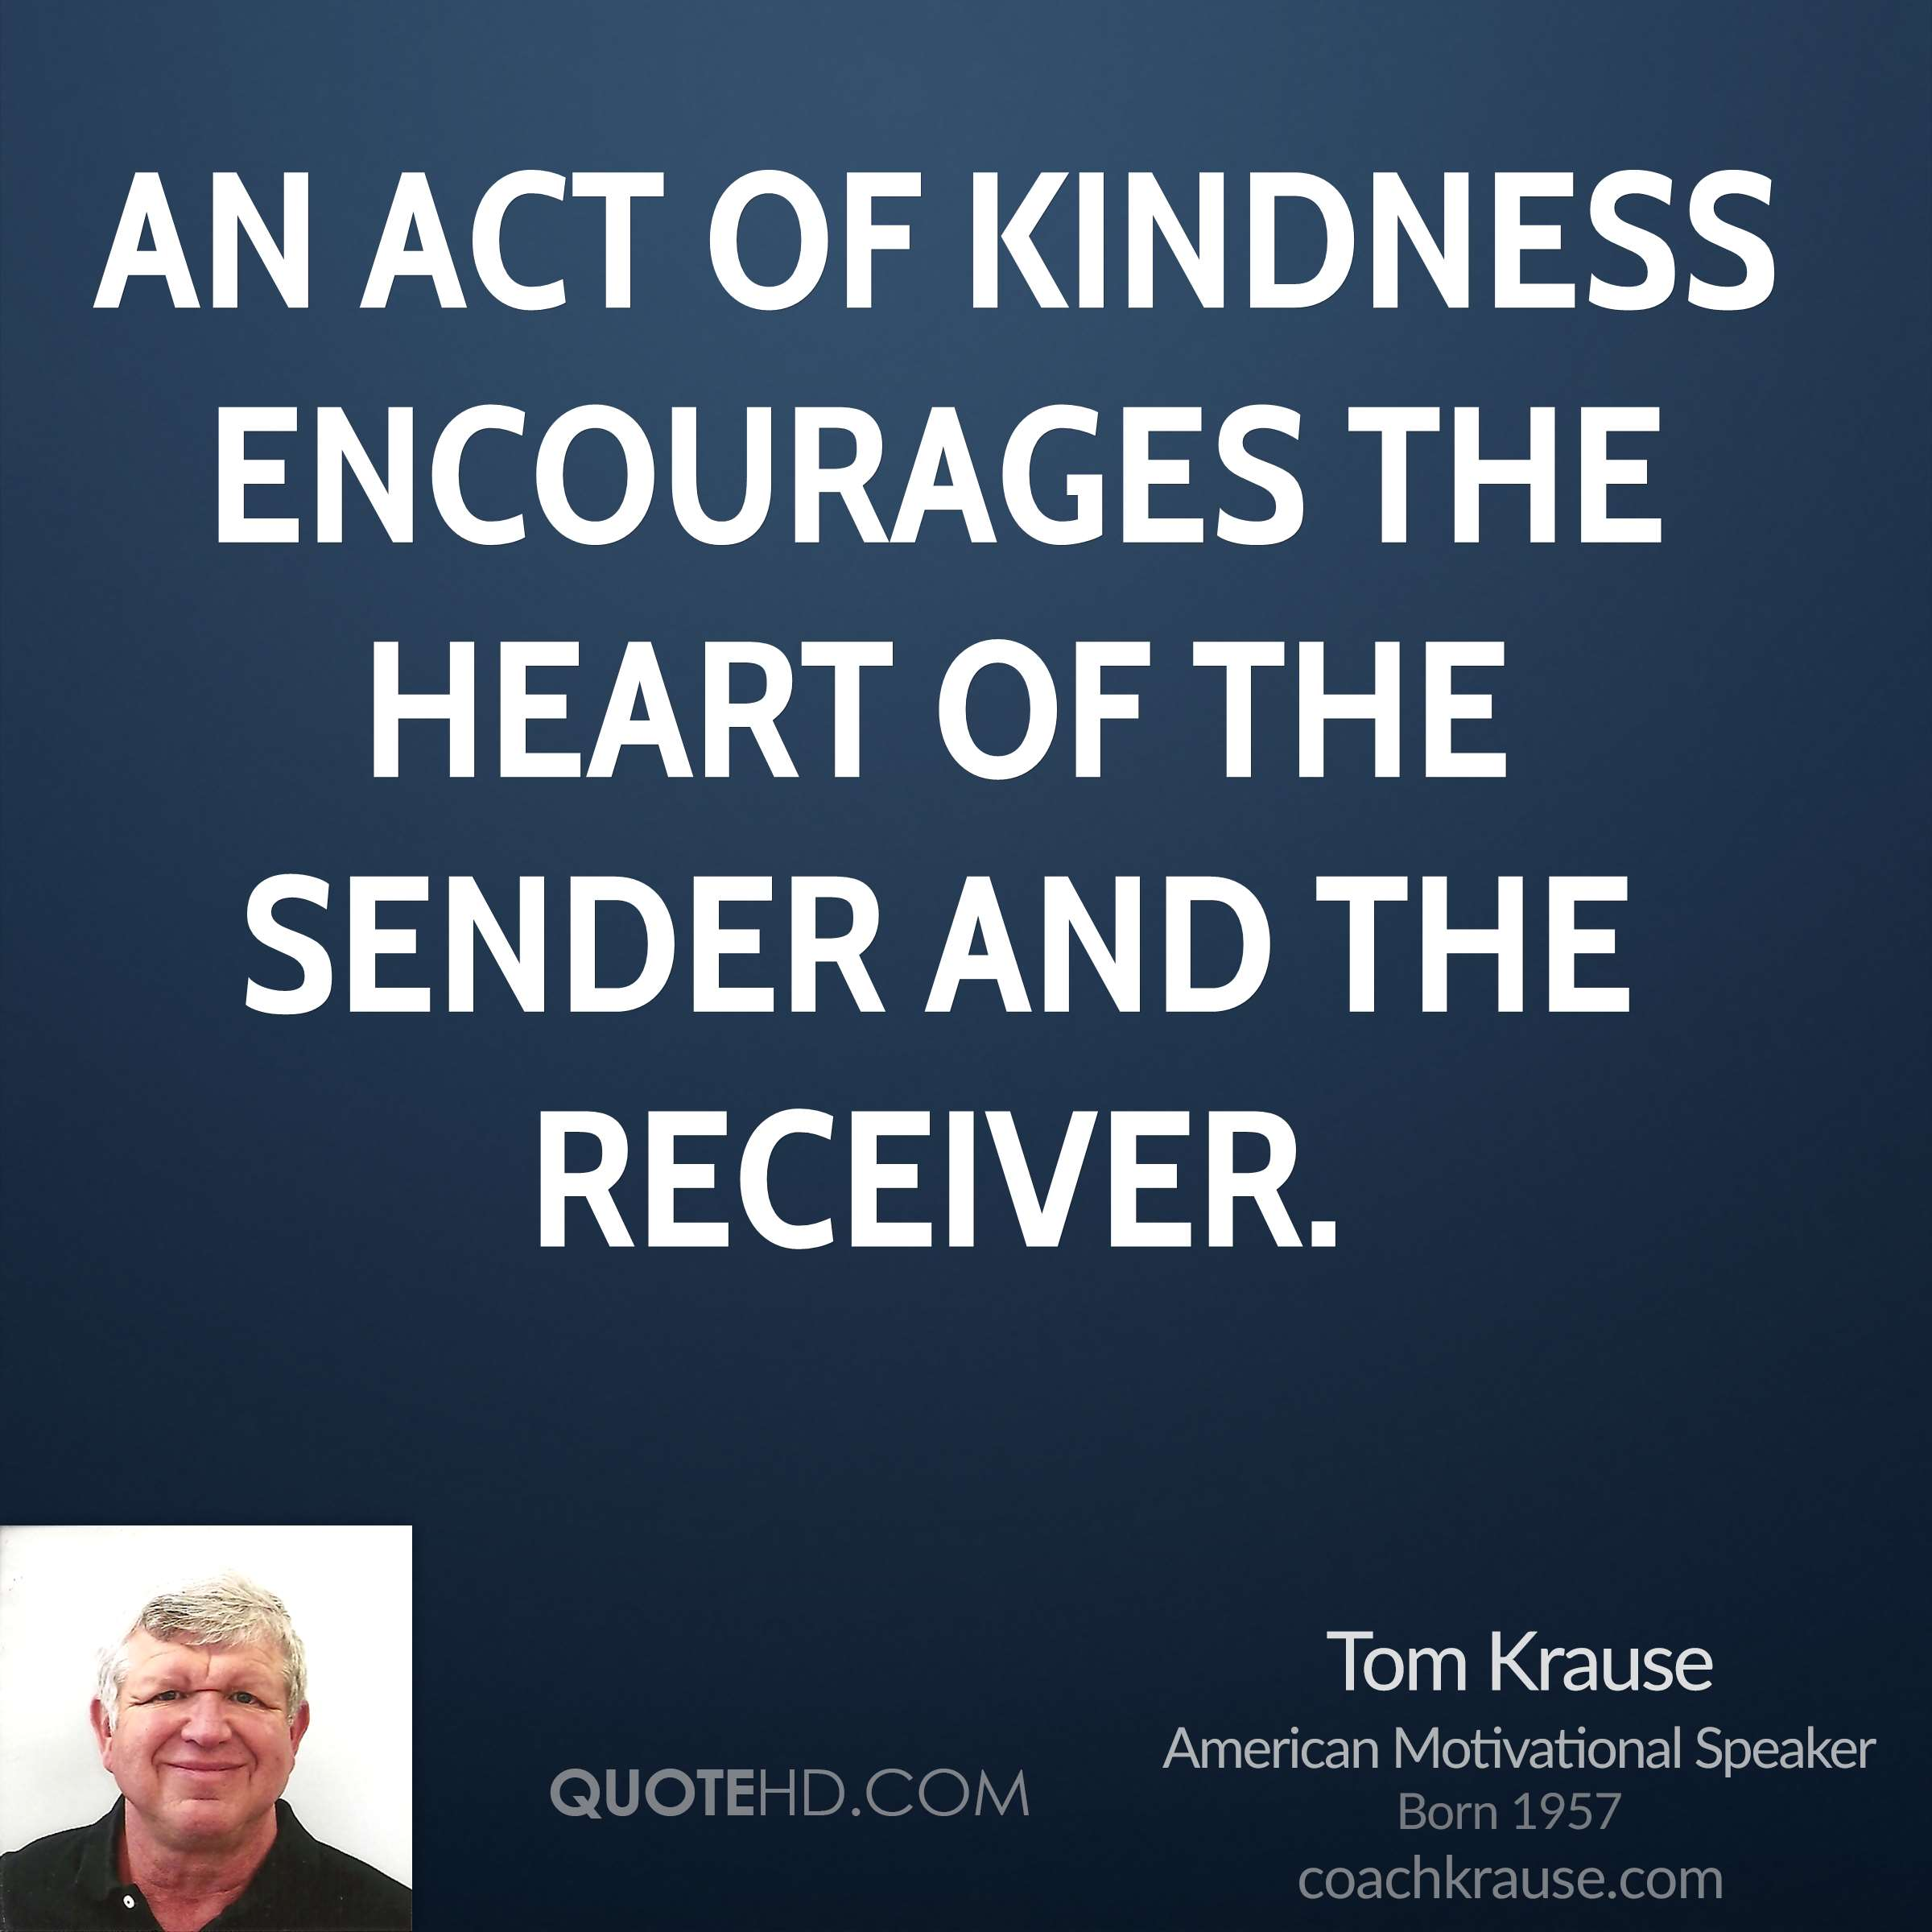 An act of kindness encourages the heart of the sender and the receiver.